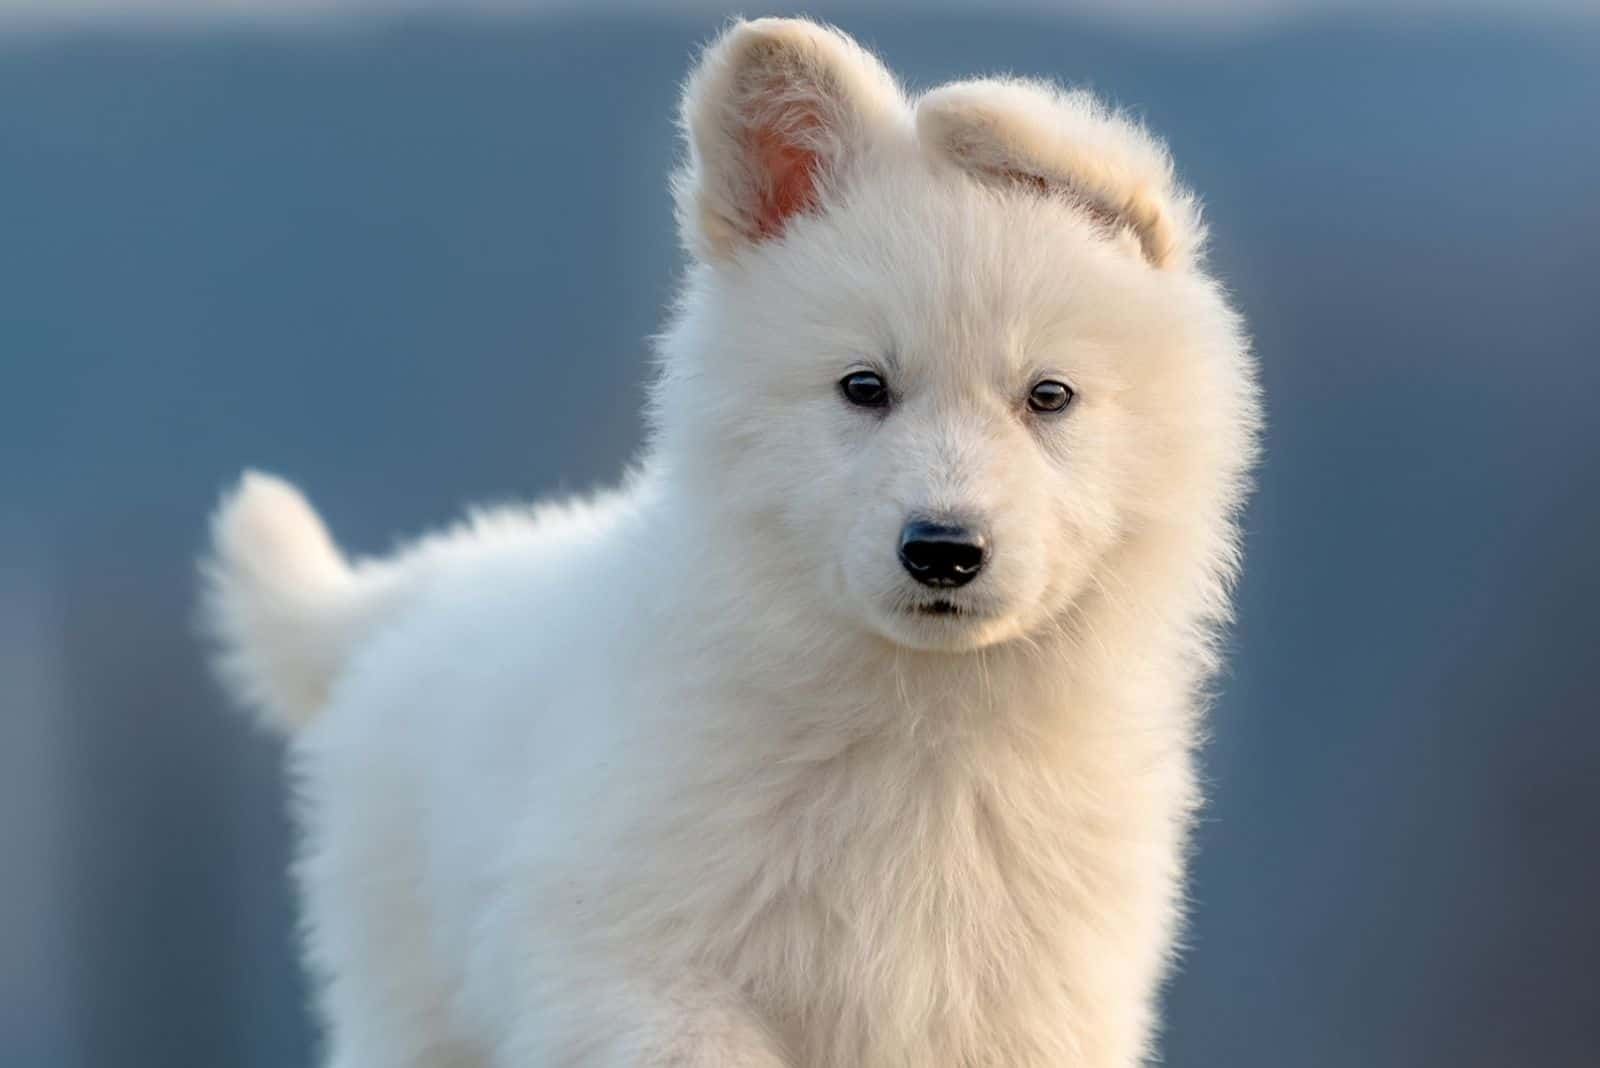 fluffy cute puppy white german shepherd standing and looking at the camera